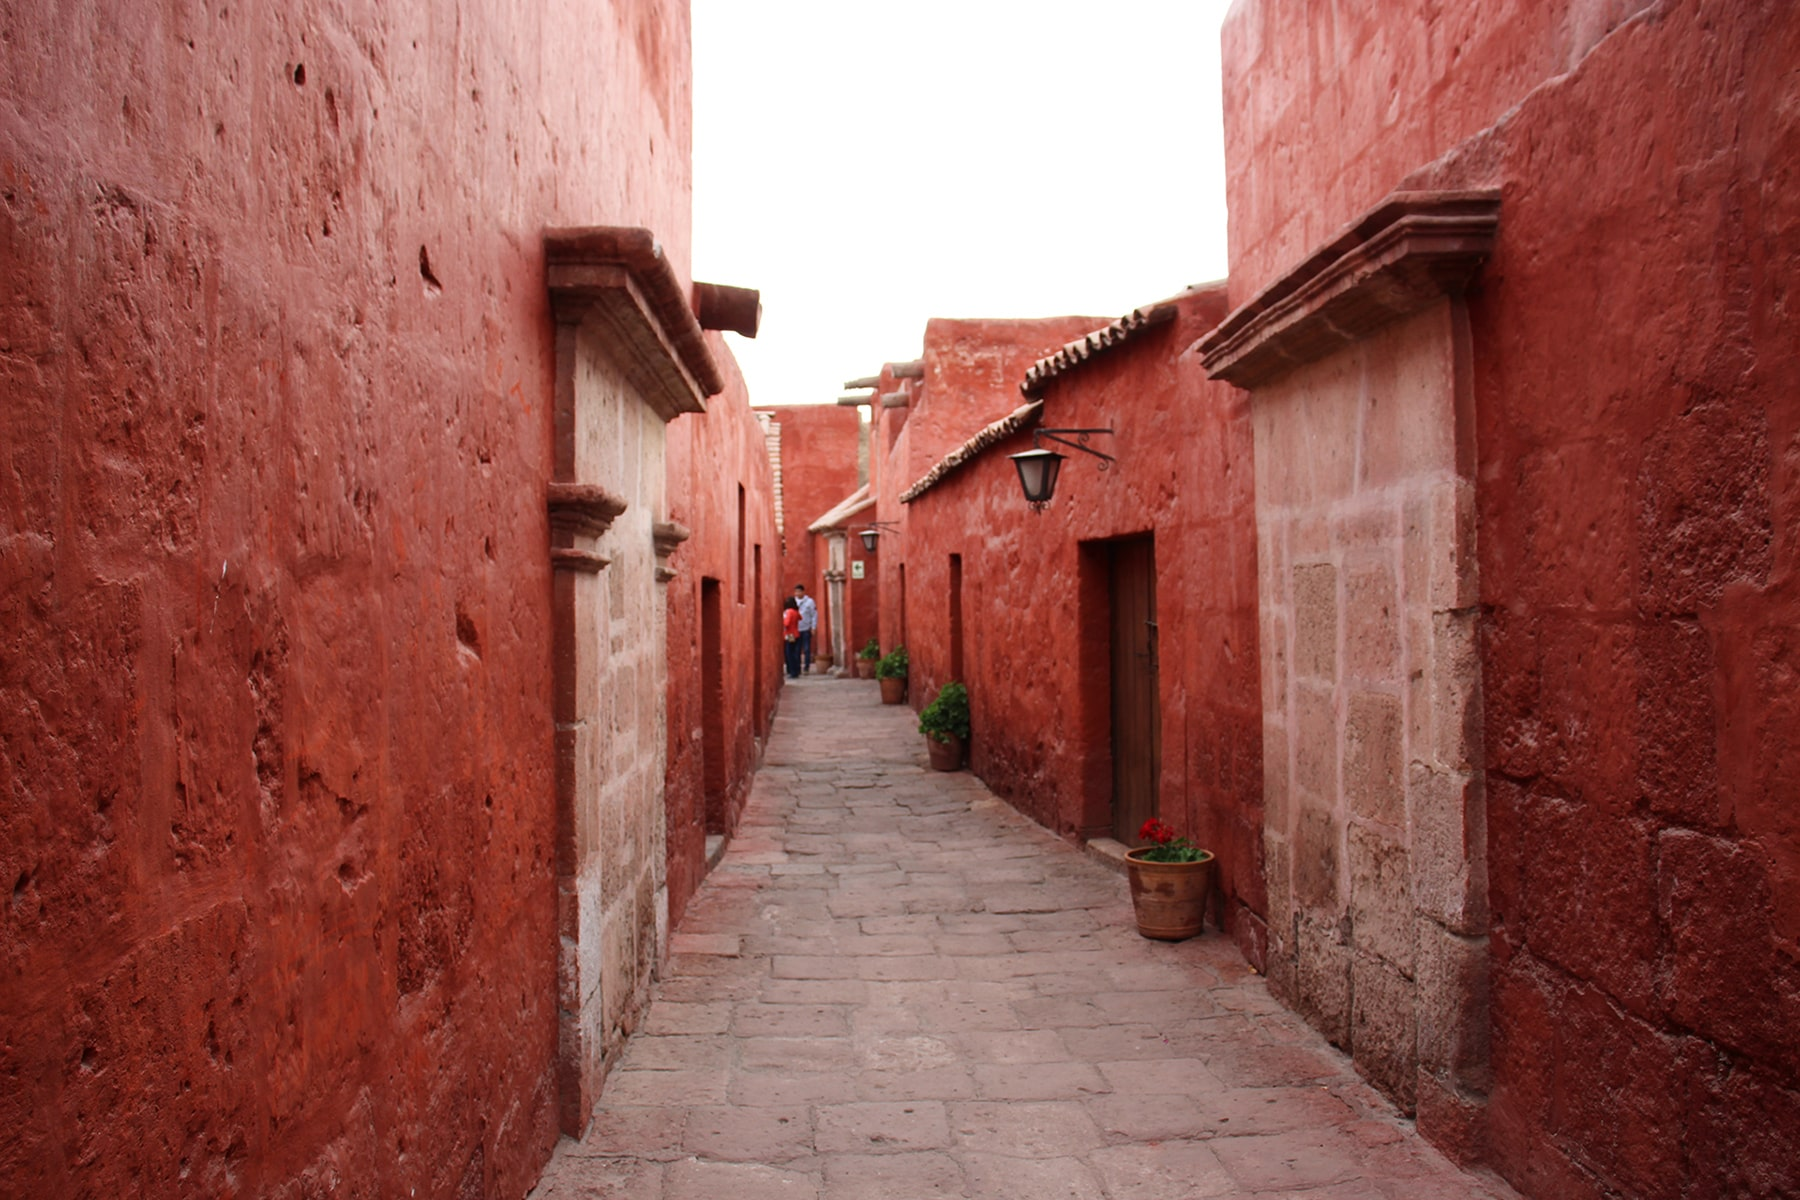 Streets in Monastery of Santa Catalina Arequipa